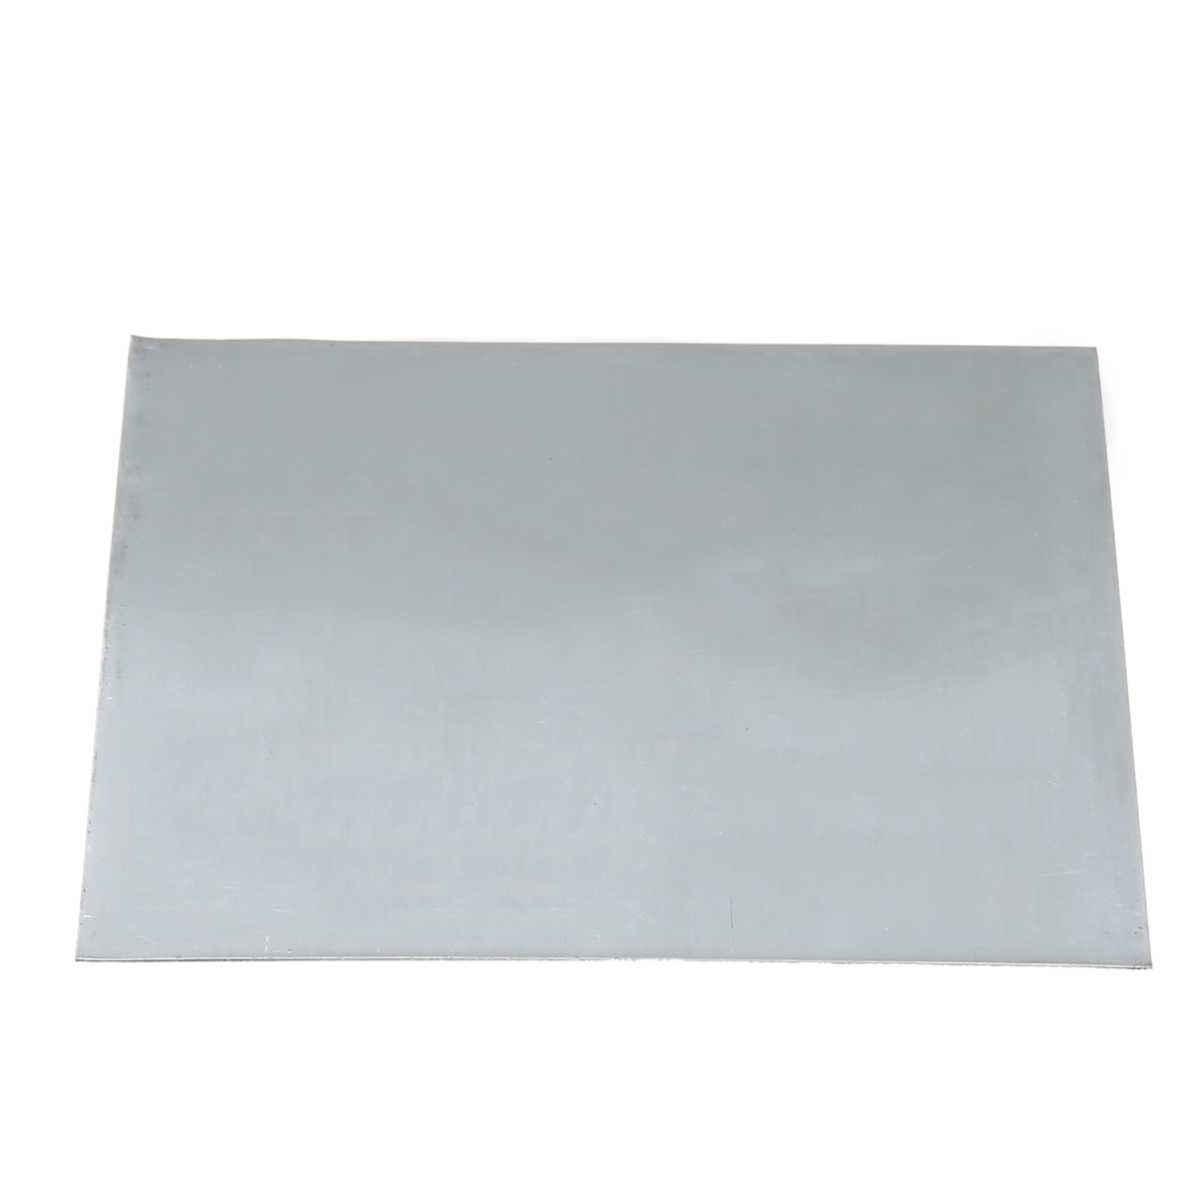 1pc High Purity Zinc Sheet 100x100x0.2mmZn Plate Bluish-white Metal For Science Lab Chemical Mayitr